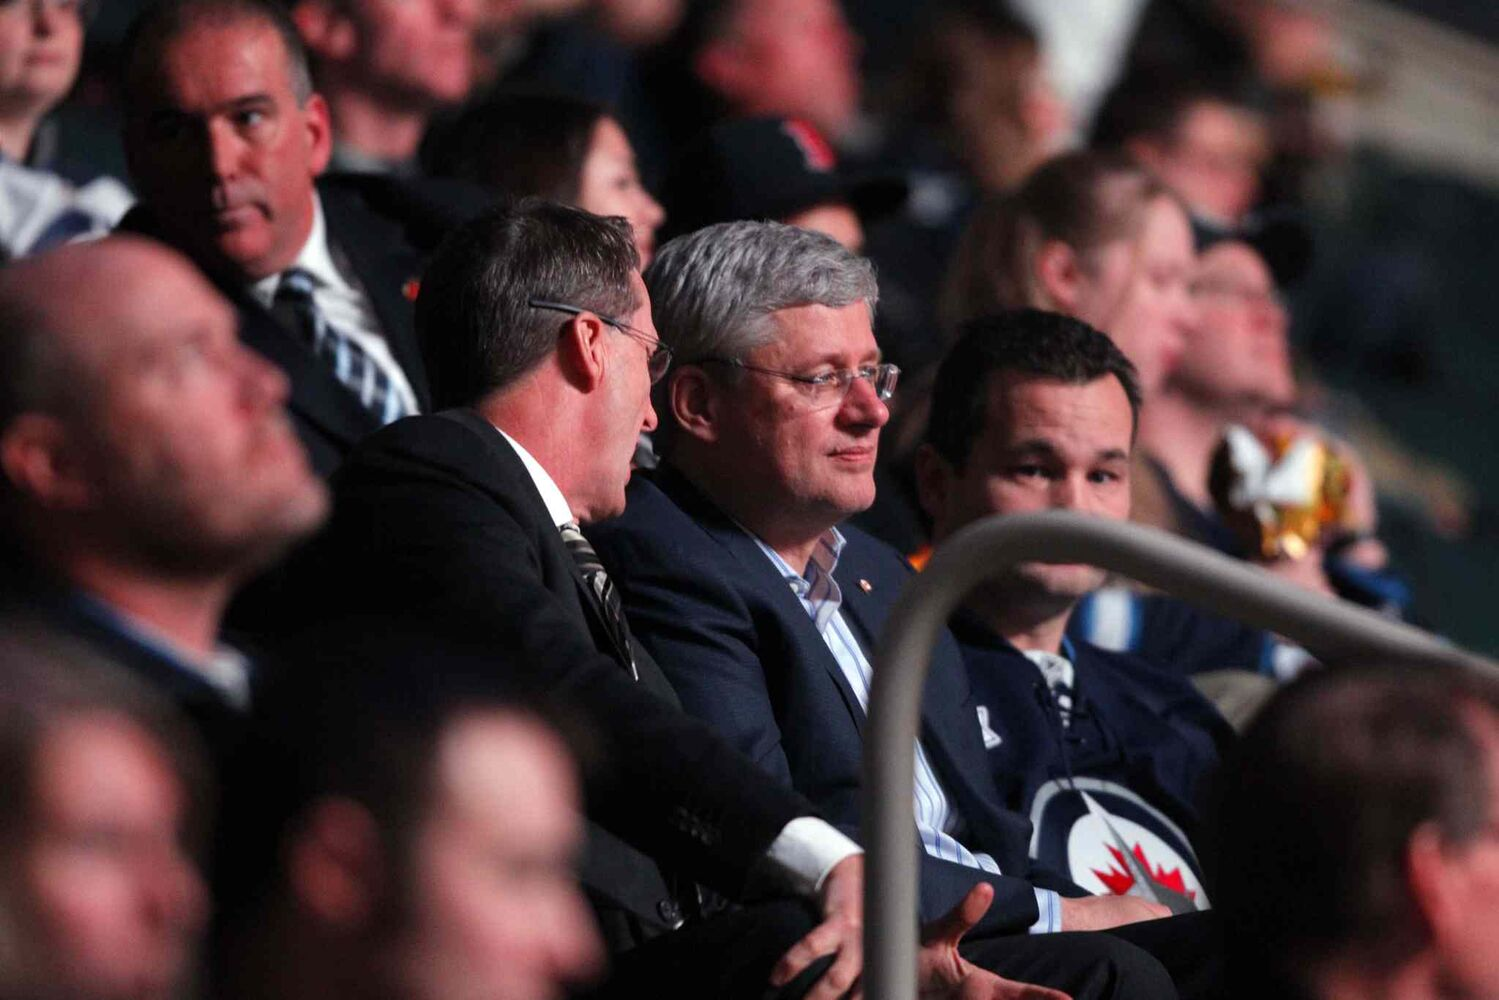 Prime Minister Stephen Harper talks with Jets owner Mark Chipman in the stands. (BORIS MINKEVICH / WINNIPEG FREE PRESS)